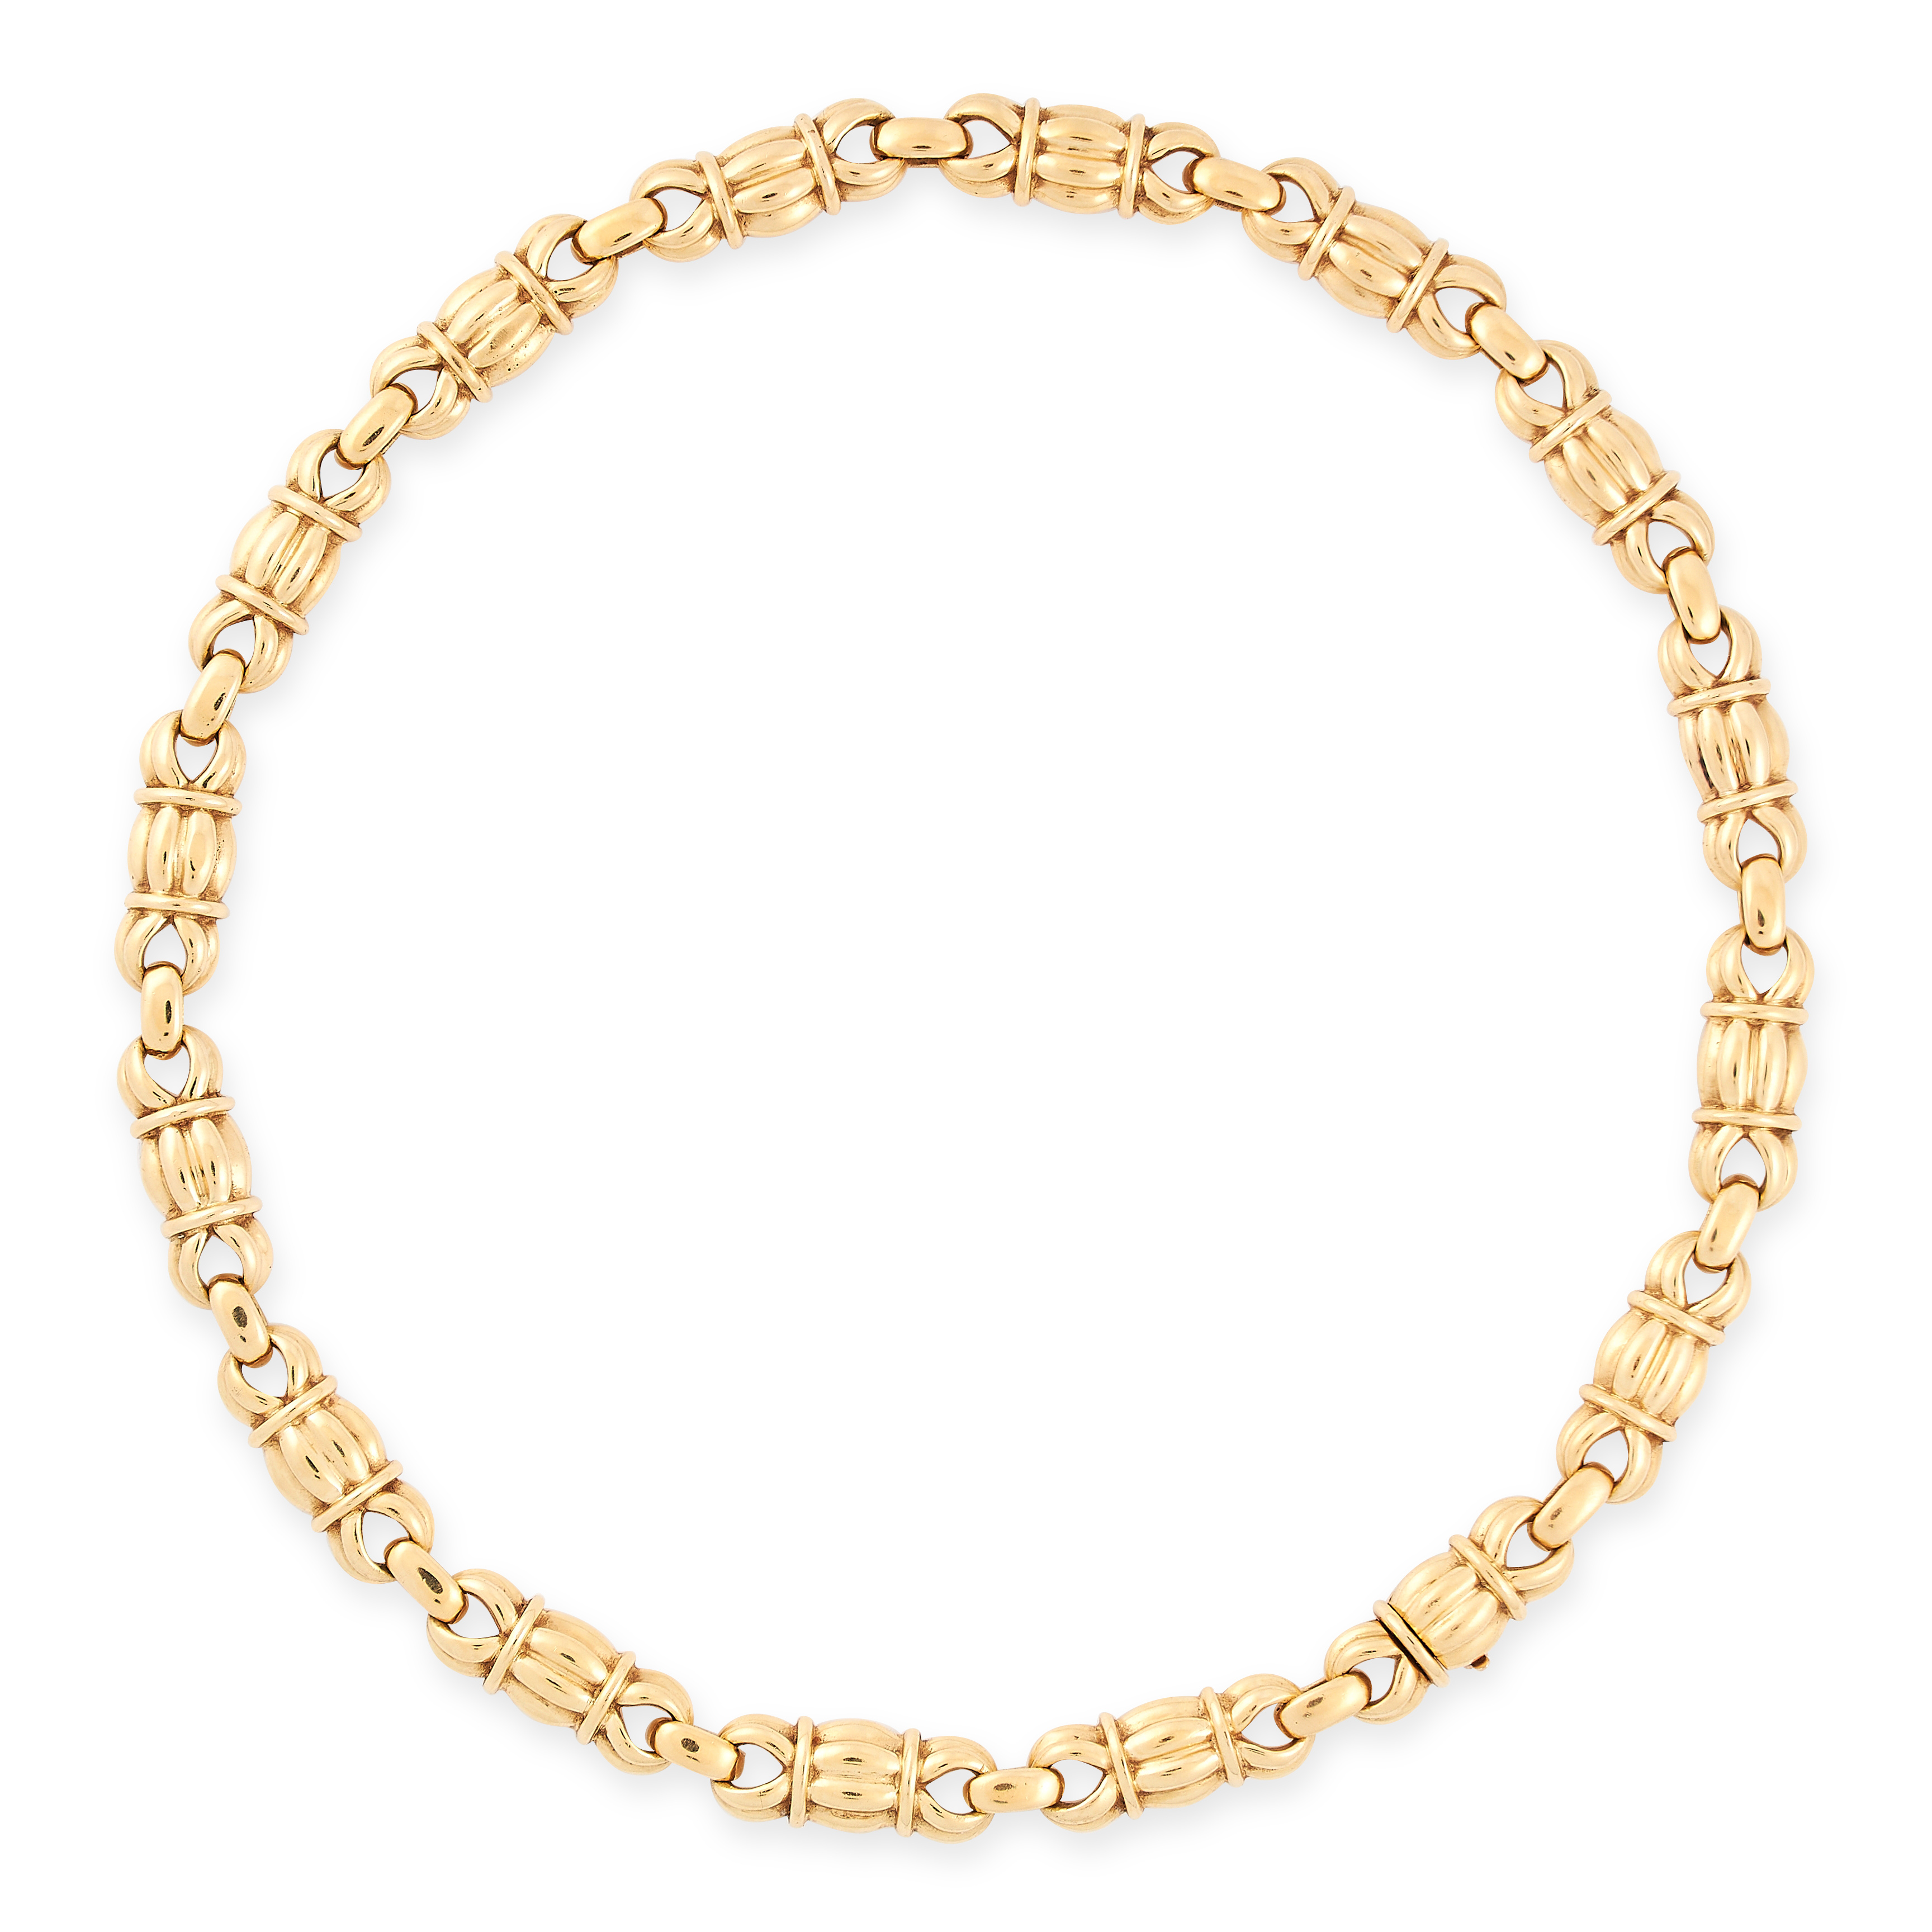 VINTAGE NECKLACE AND EARRINGS SUITE in 18ct yellow gold, the necklace is formed of fancy barrel